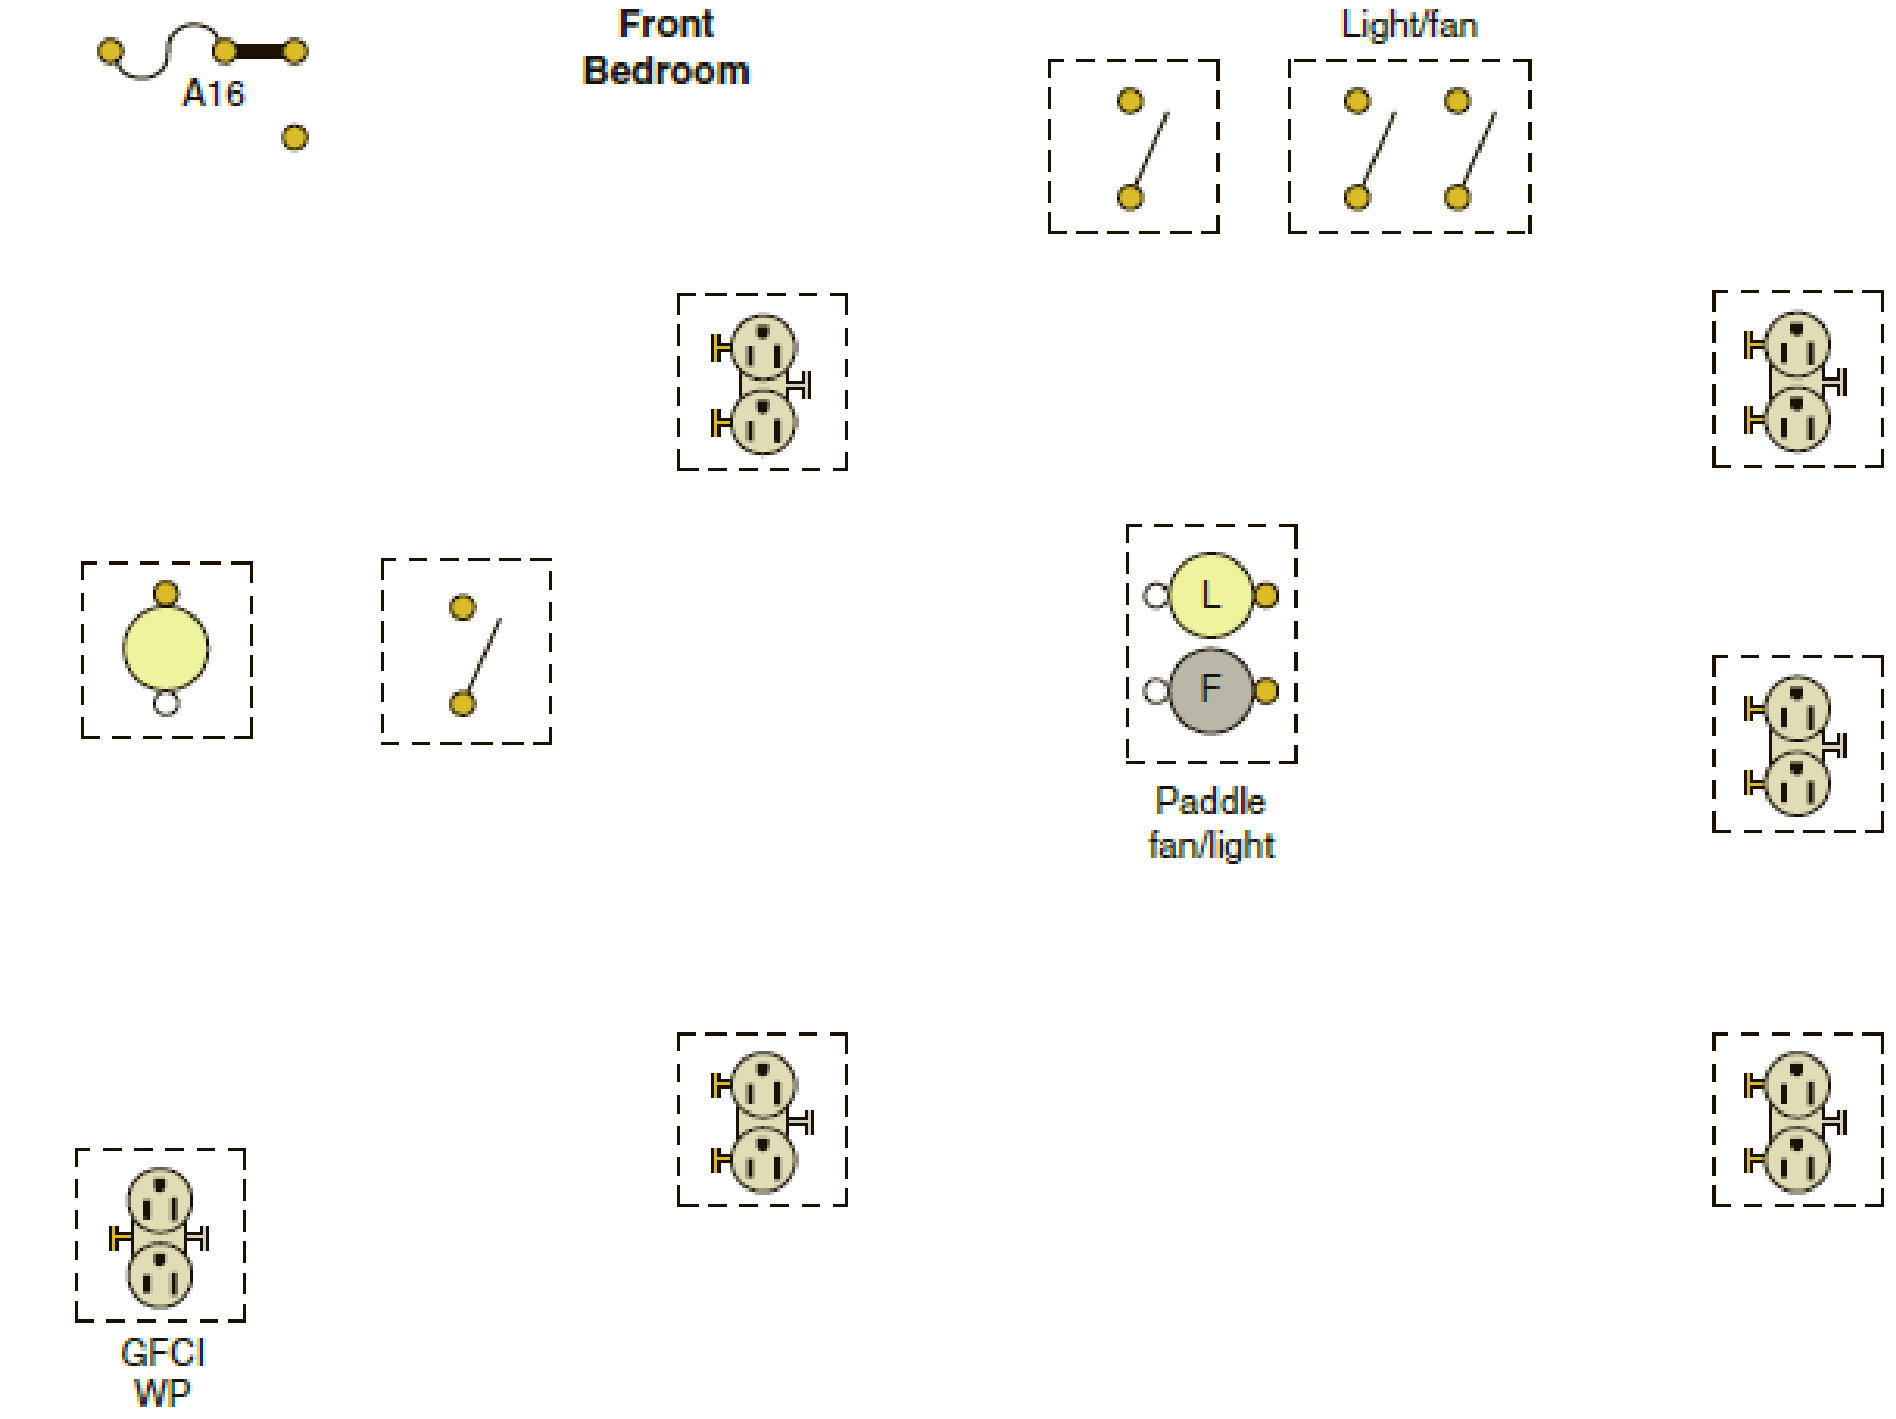 The Following Is A Layout Of The Lighting Circuit For The